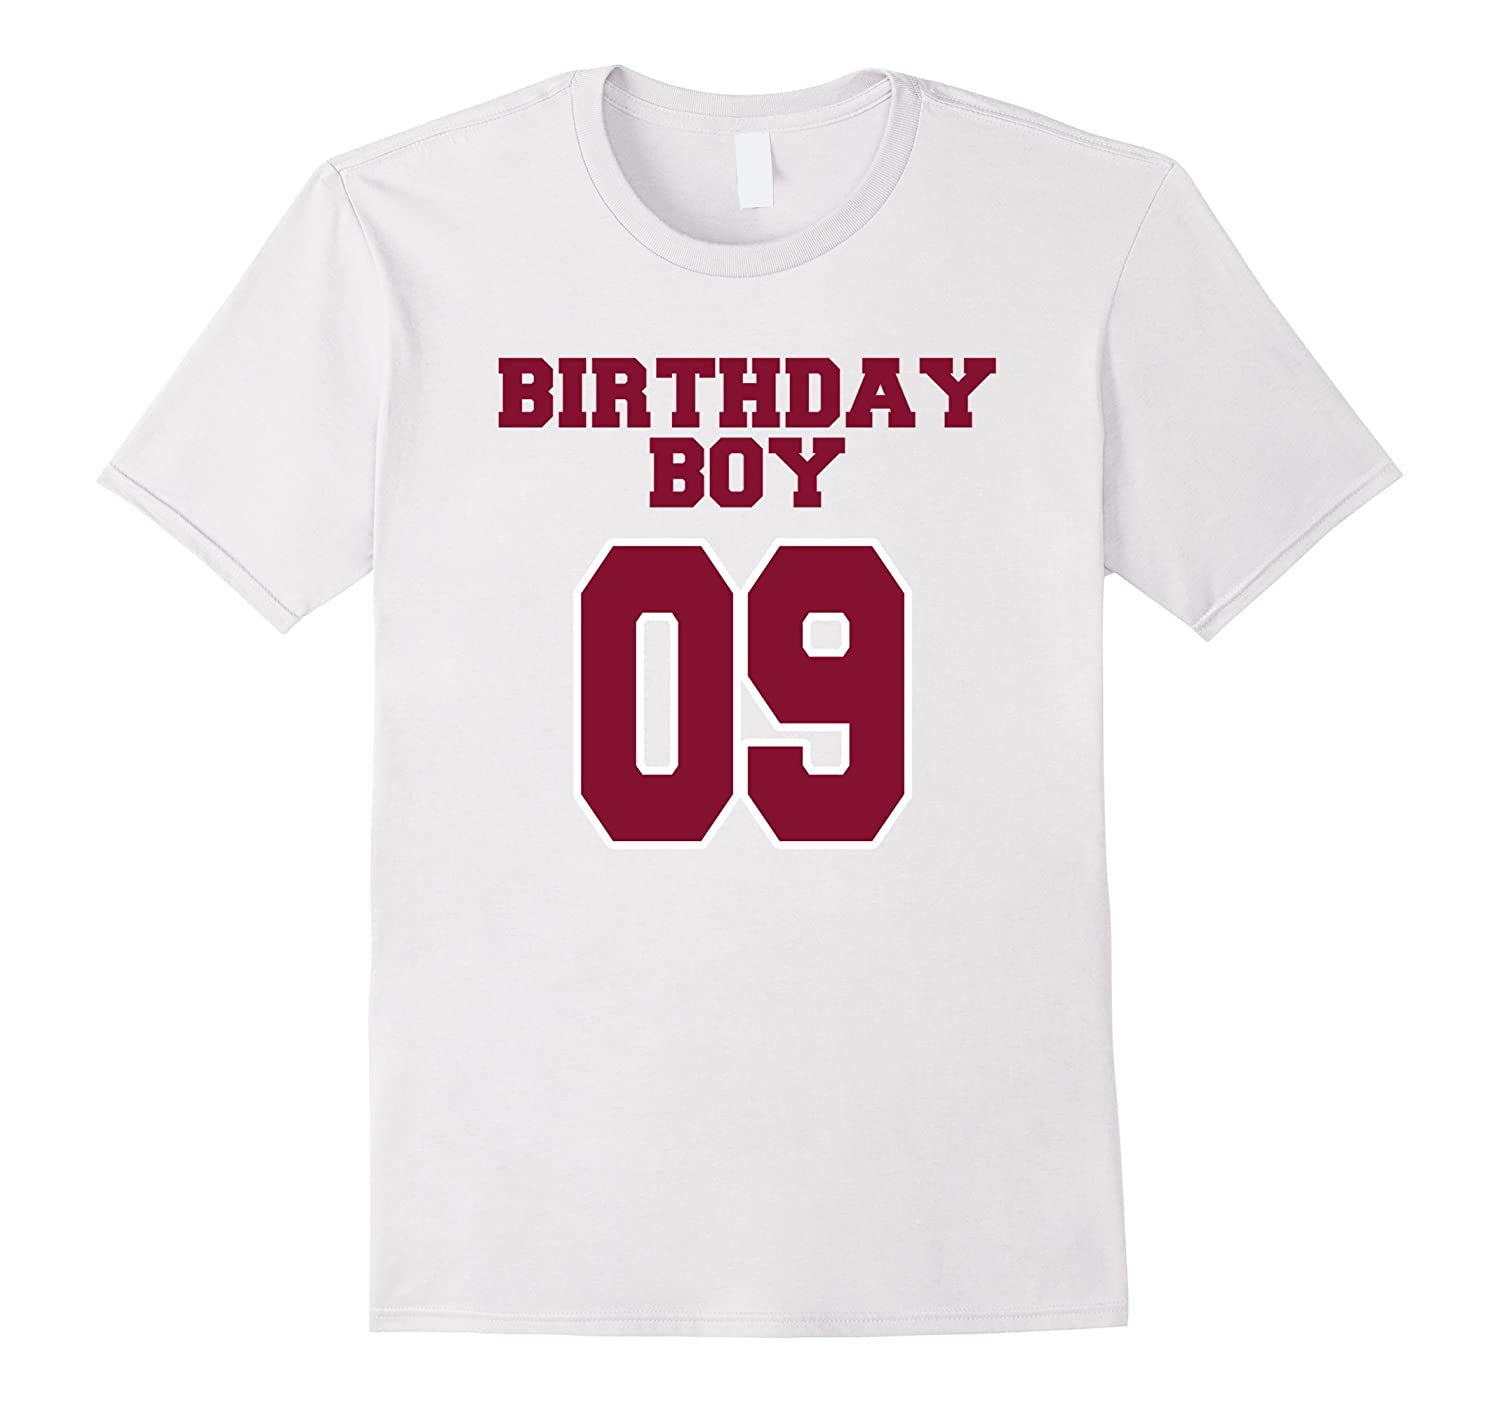 9th Birthday Boy 9 Years Old T Shirt College Style TH